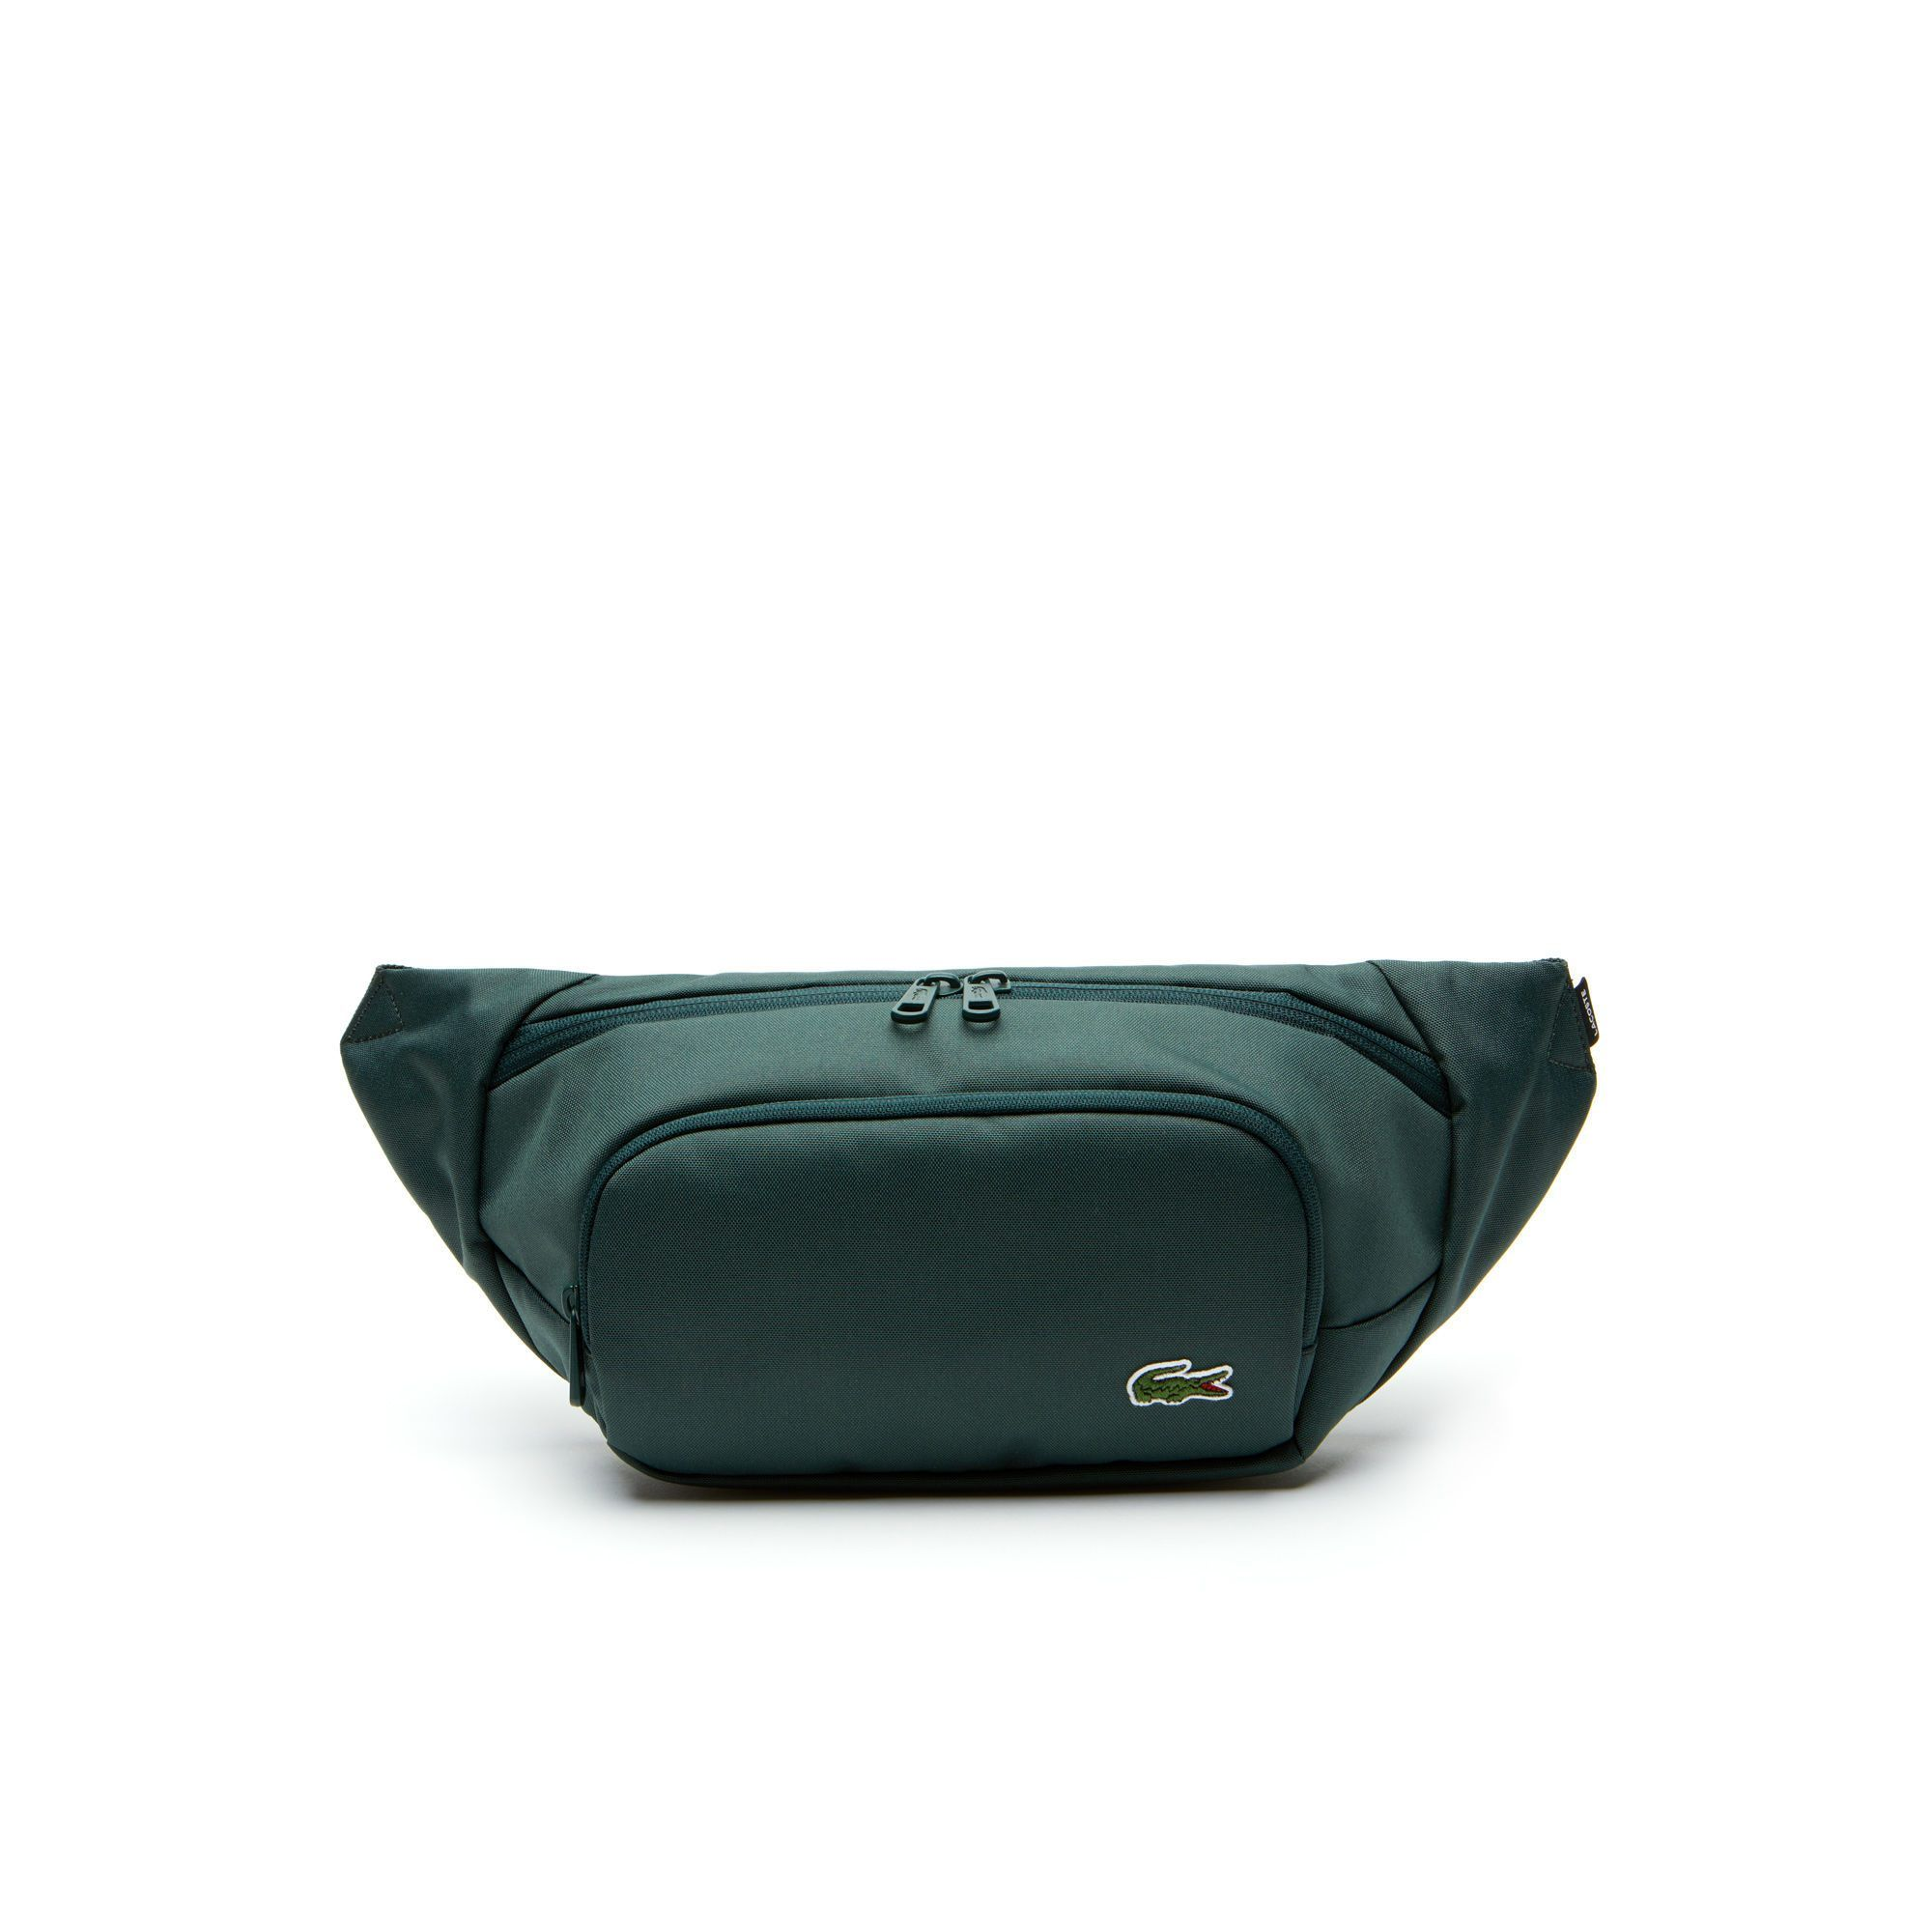 73f81513b751 LACOSTE MEN S NÉOCROC DOUBLE POCKET CANVAS FANNY PACK.  lacoste  bags  belt  bags  canvas